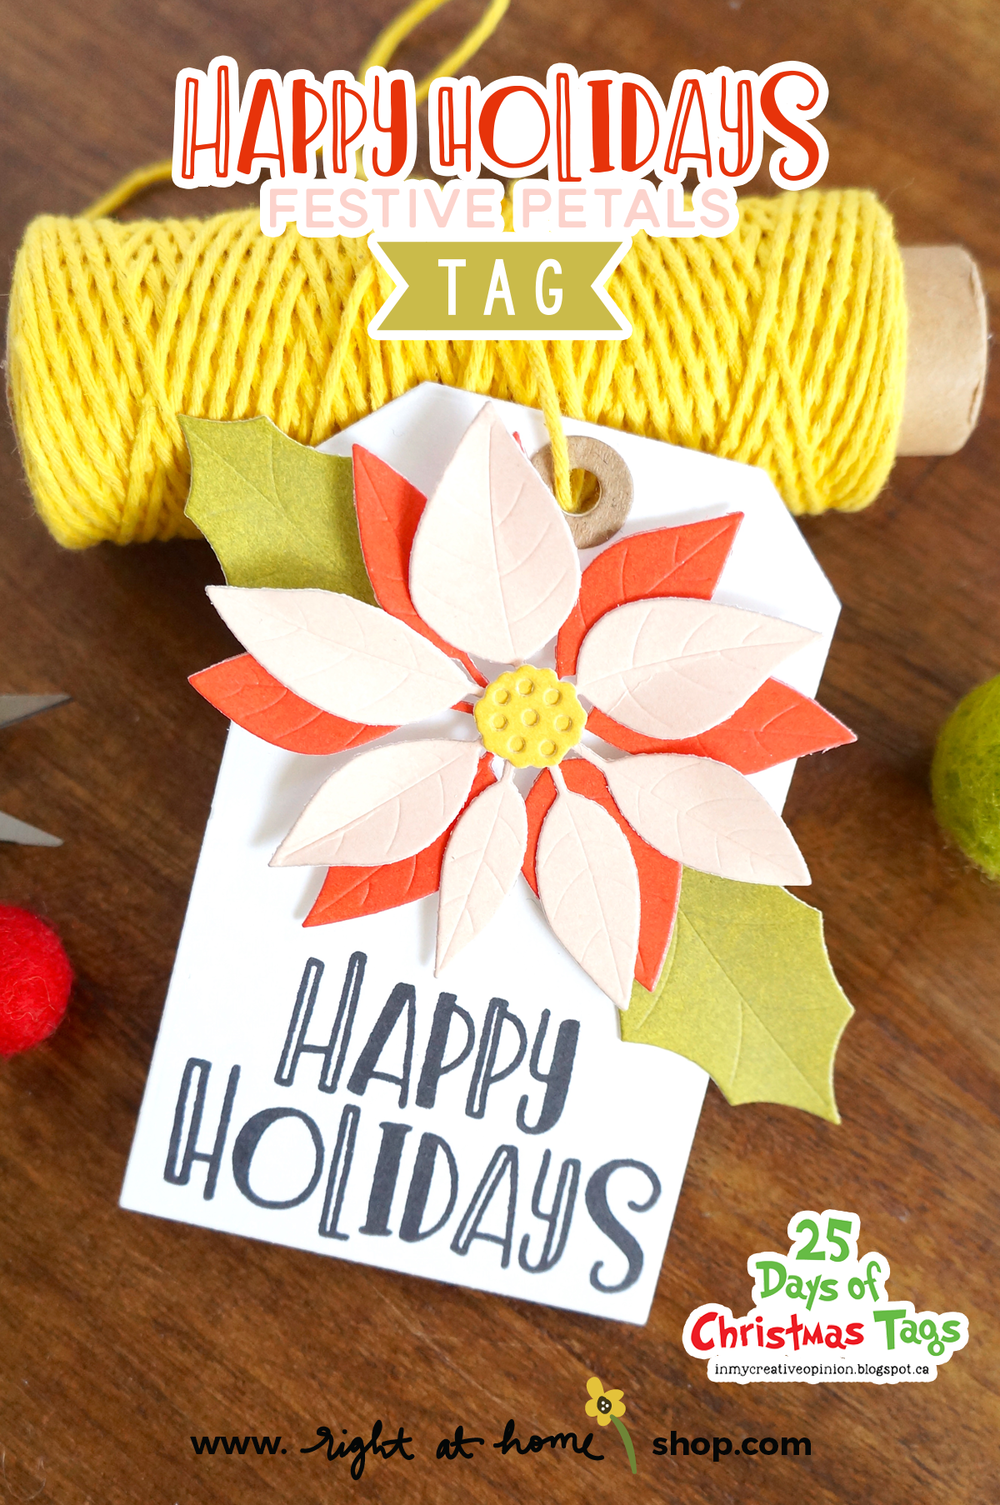 Click to view (+watch!) this Happy Holidays DIY Christmas Tag using the Festive Petals Die Set from Right at Home! Created as part of the 25 Days of Christmas Tags InstaHop. All details at rightathomeshop.com/blog.